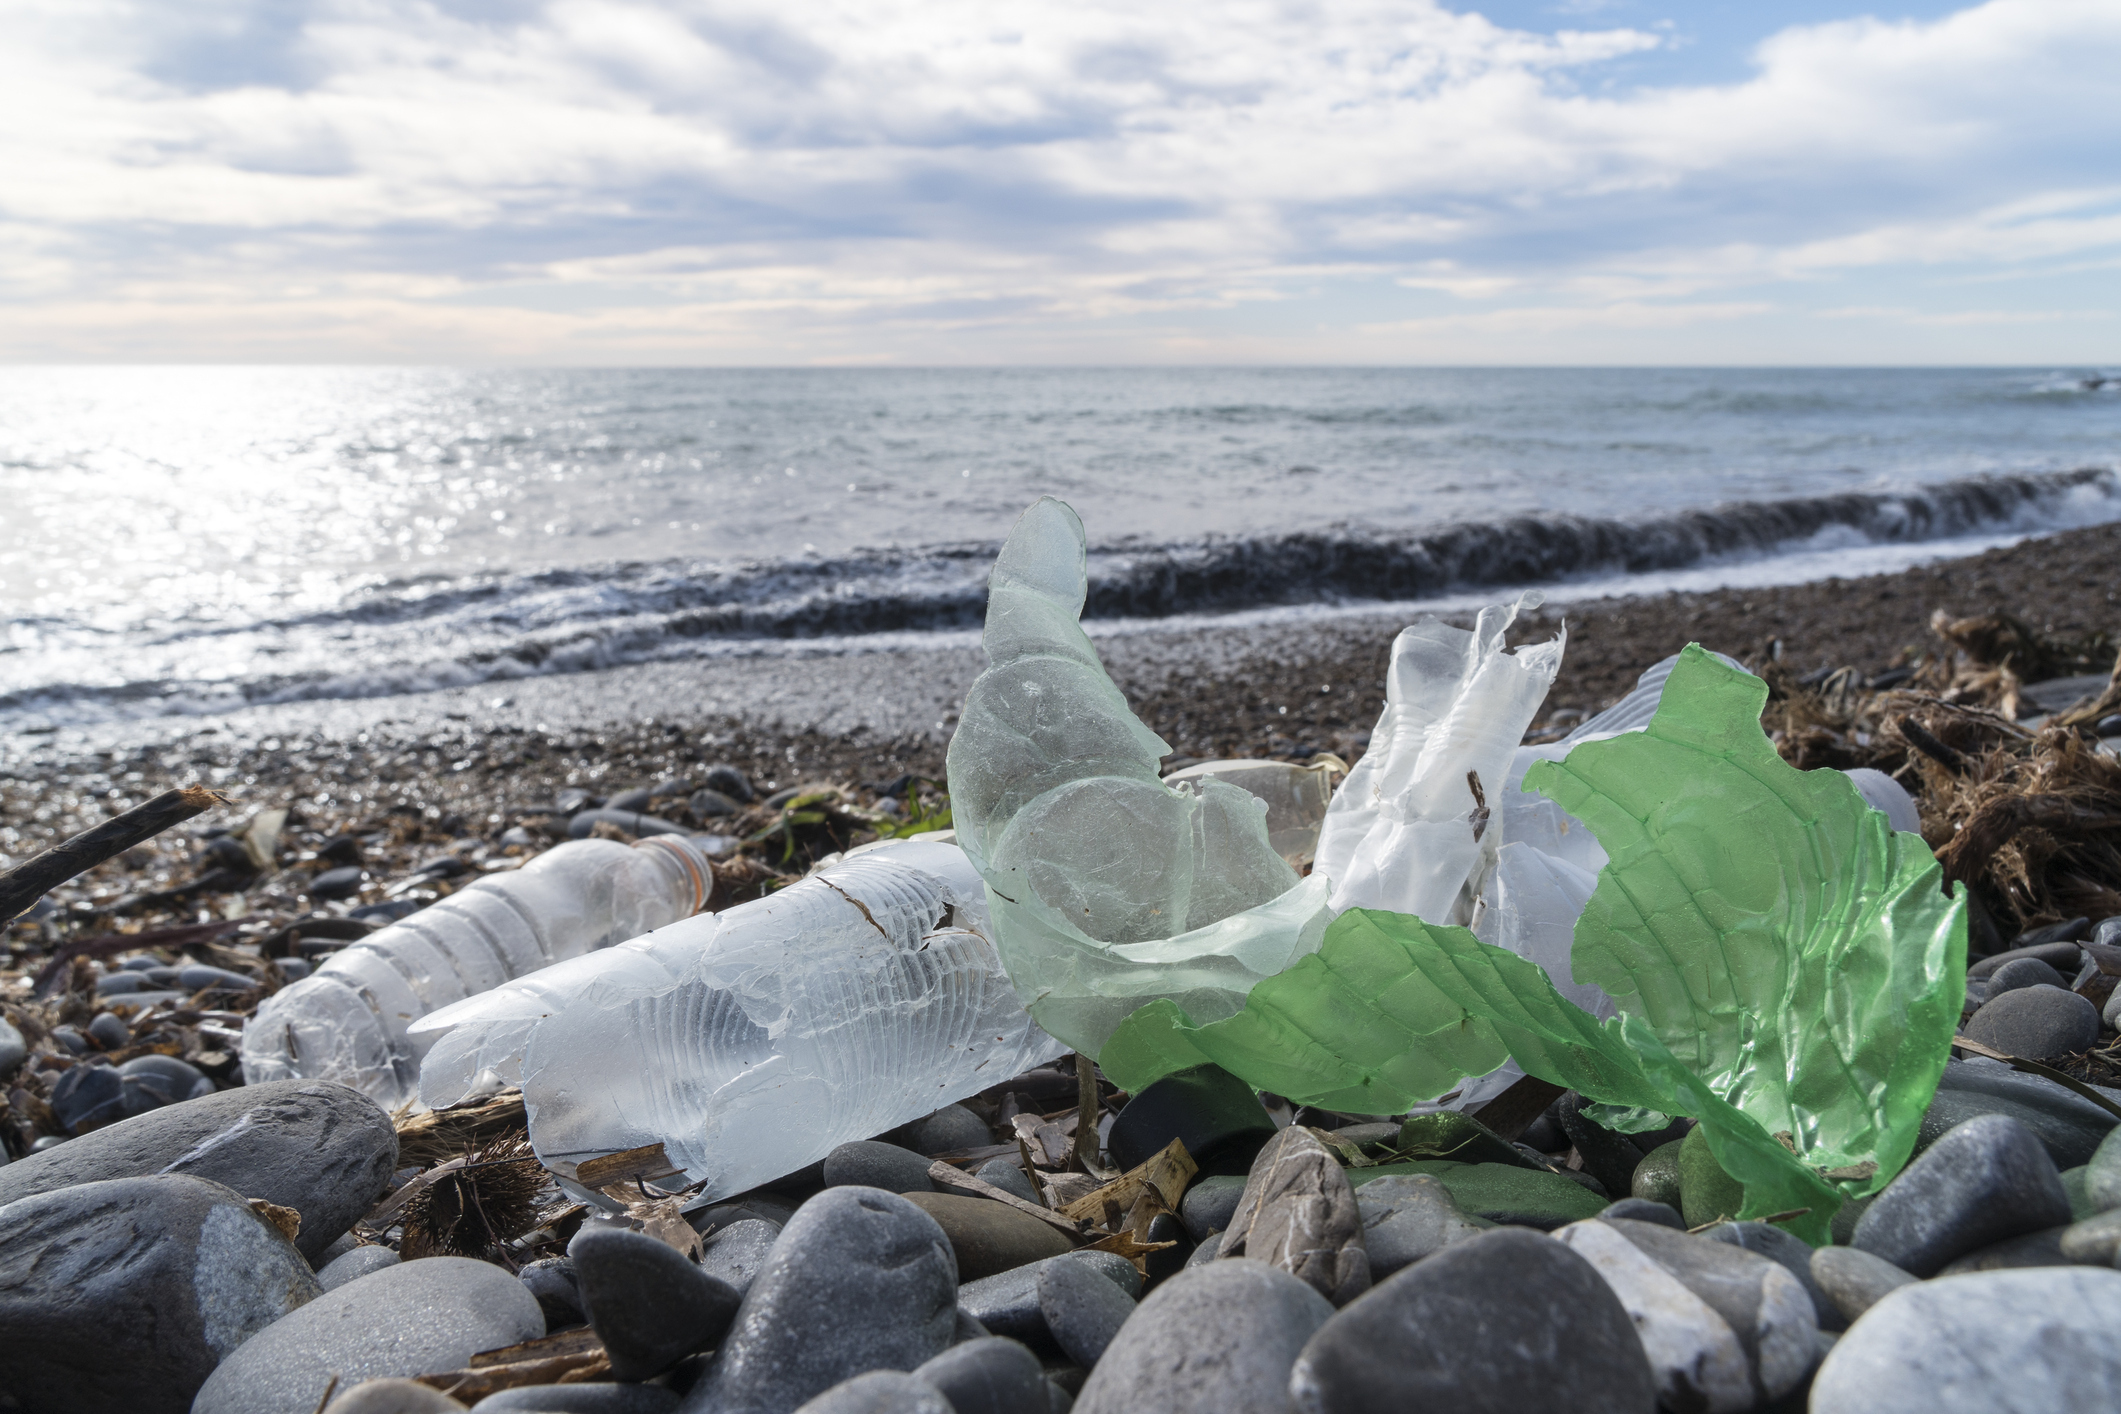 Plastics pollution is a growing problem.